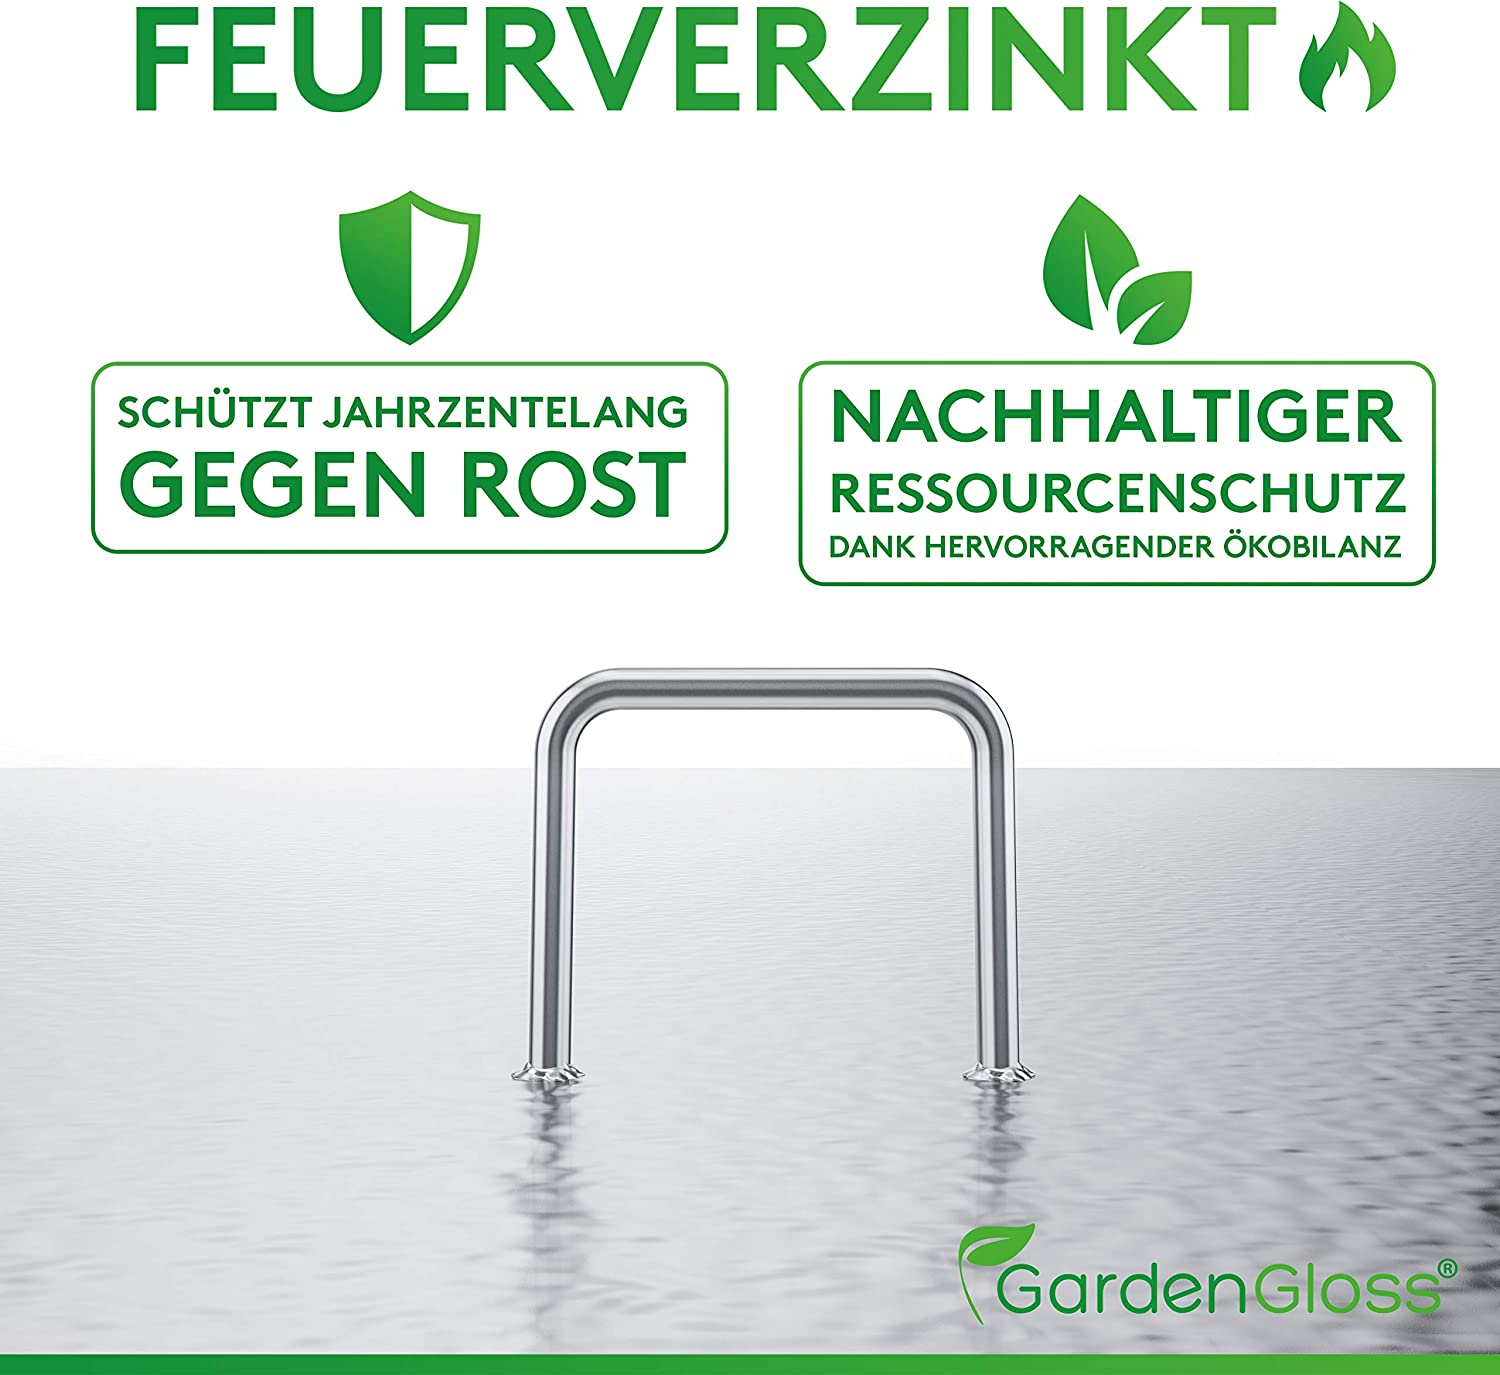 GardenGloss Heavy Duty Garden Pegs Made of Steel Strong Metal Pegs for Membrane Netting and Fence Anti-Rust Landscape Staples